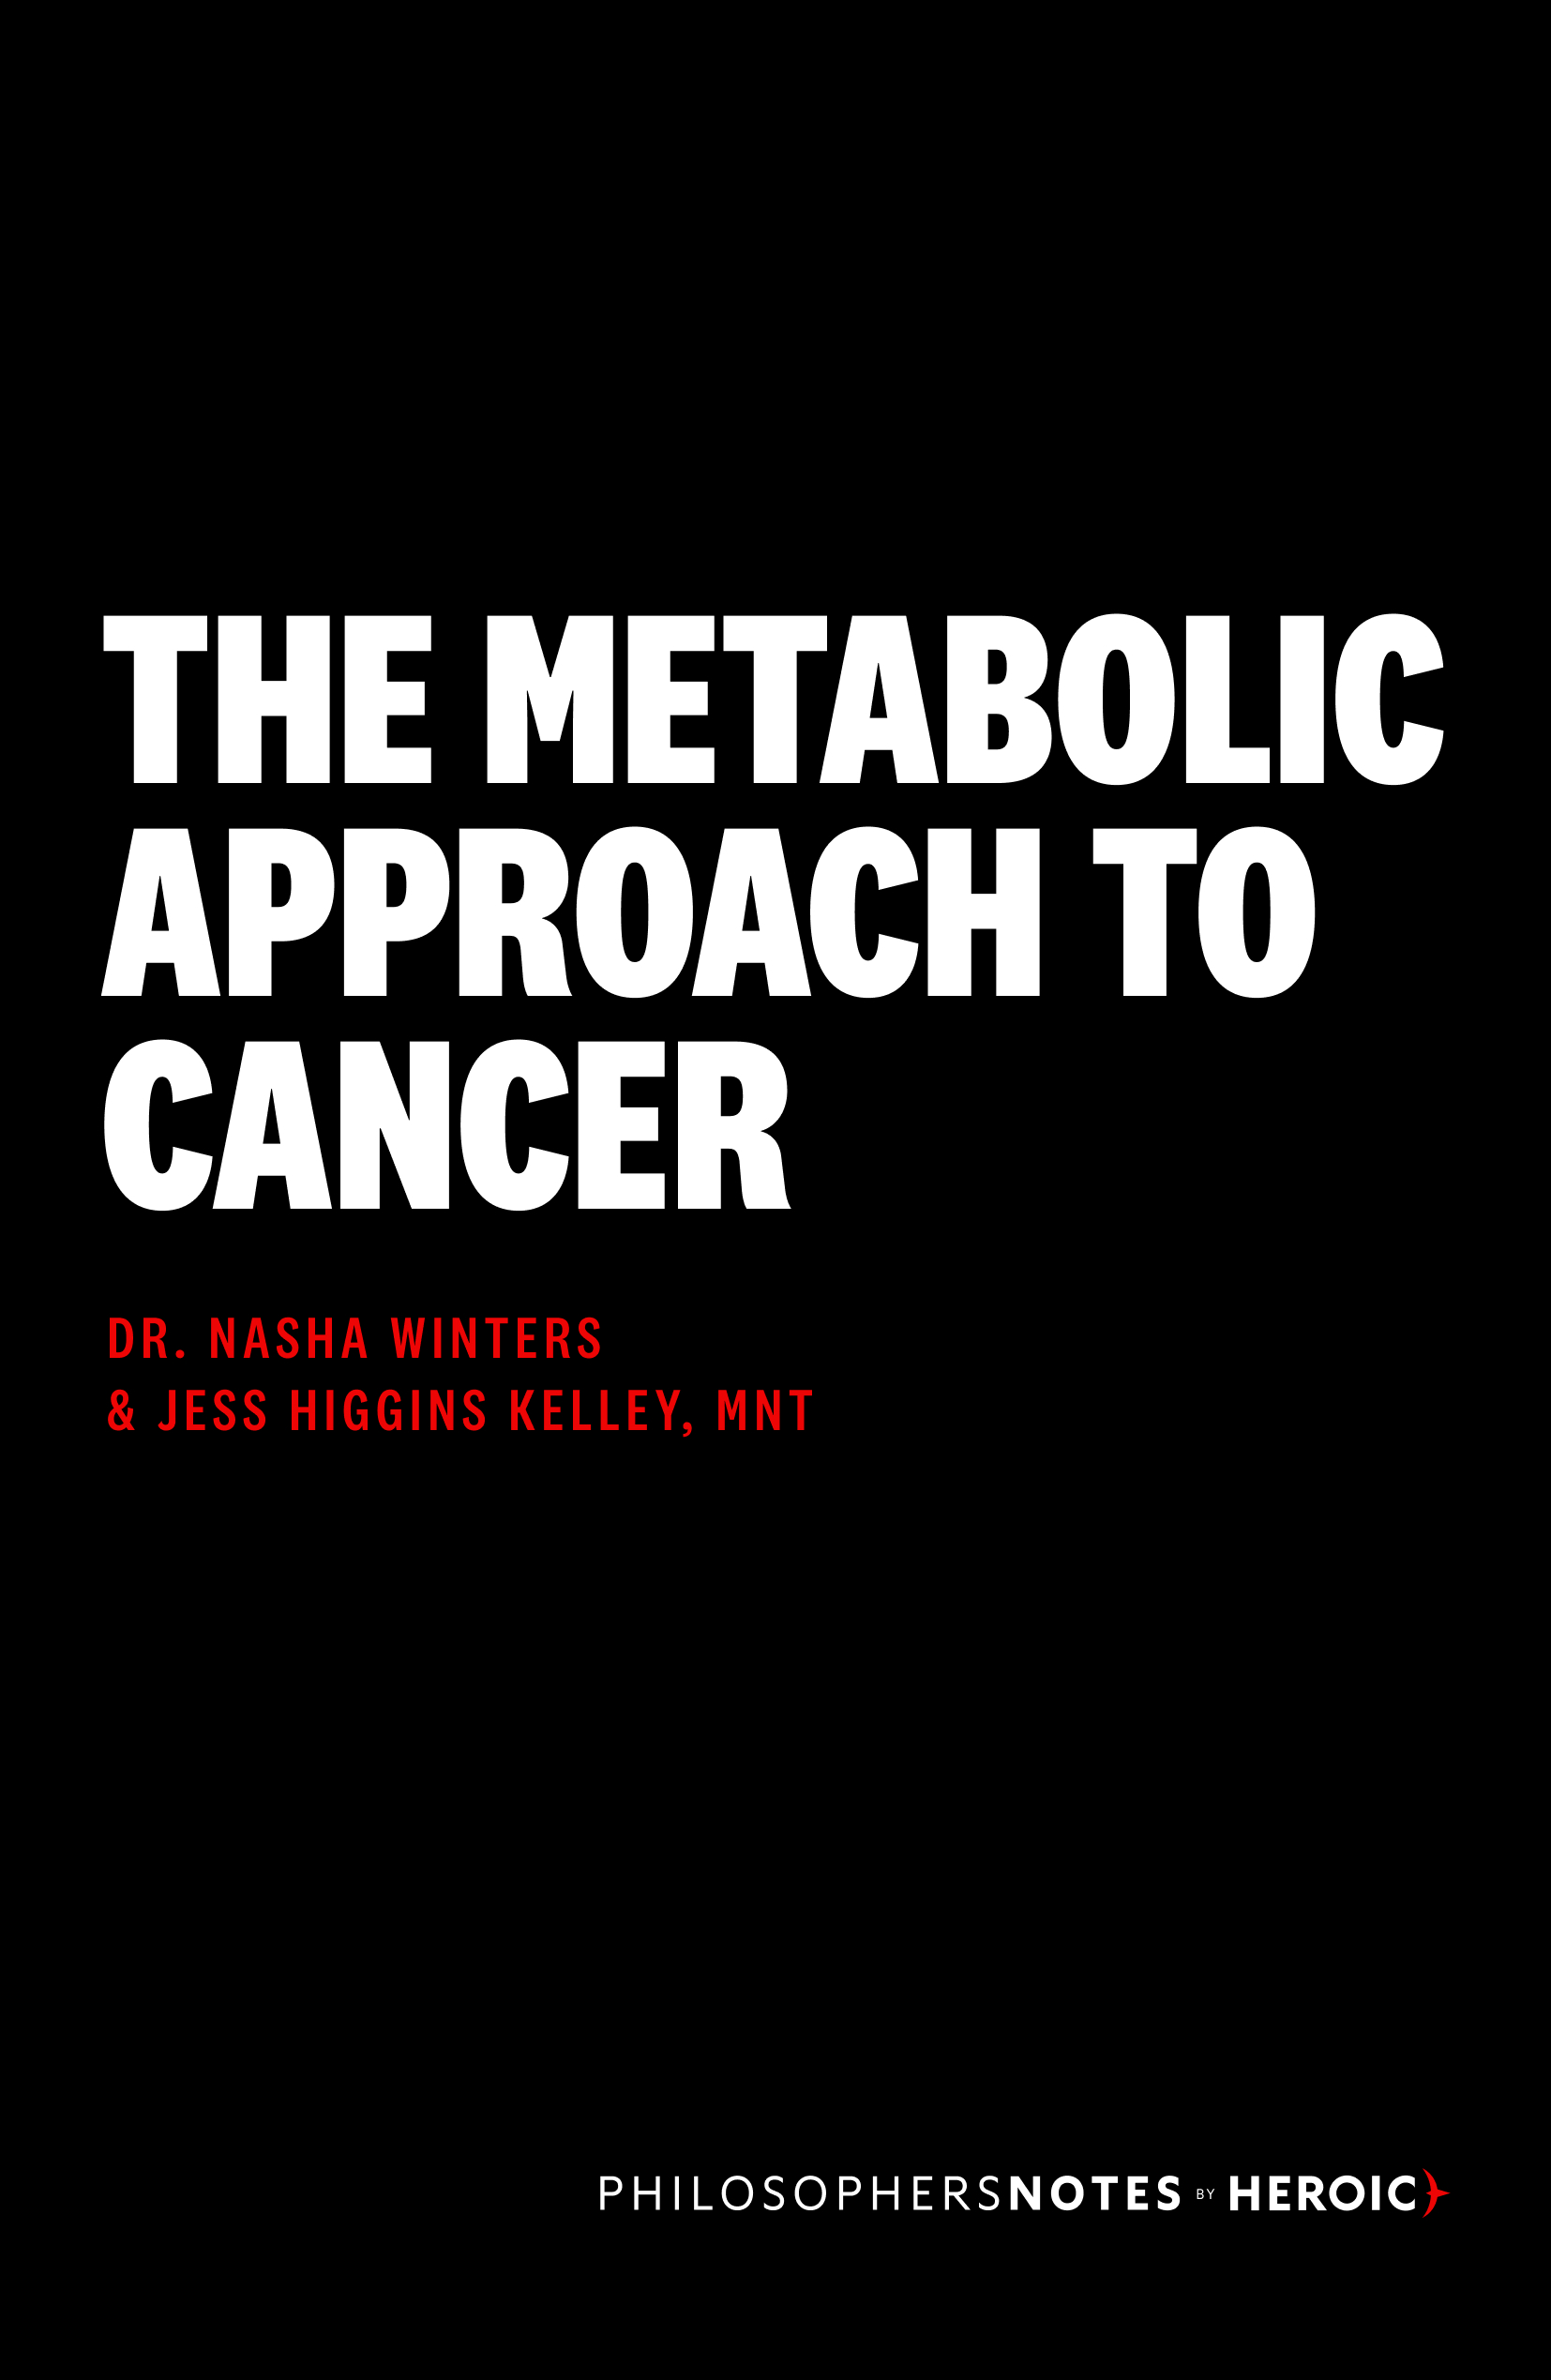 The Metabolic Approach to Cancer Book Cover